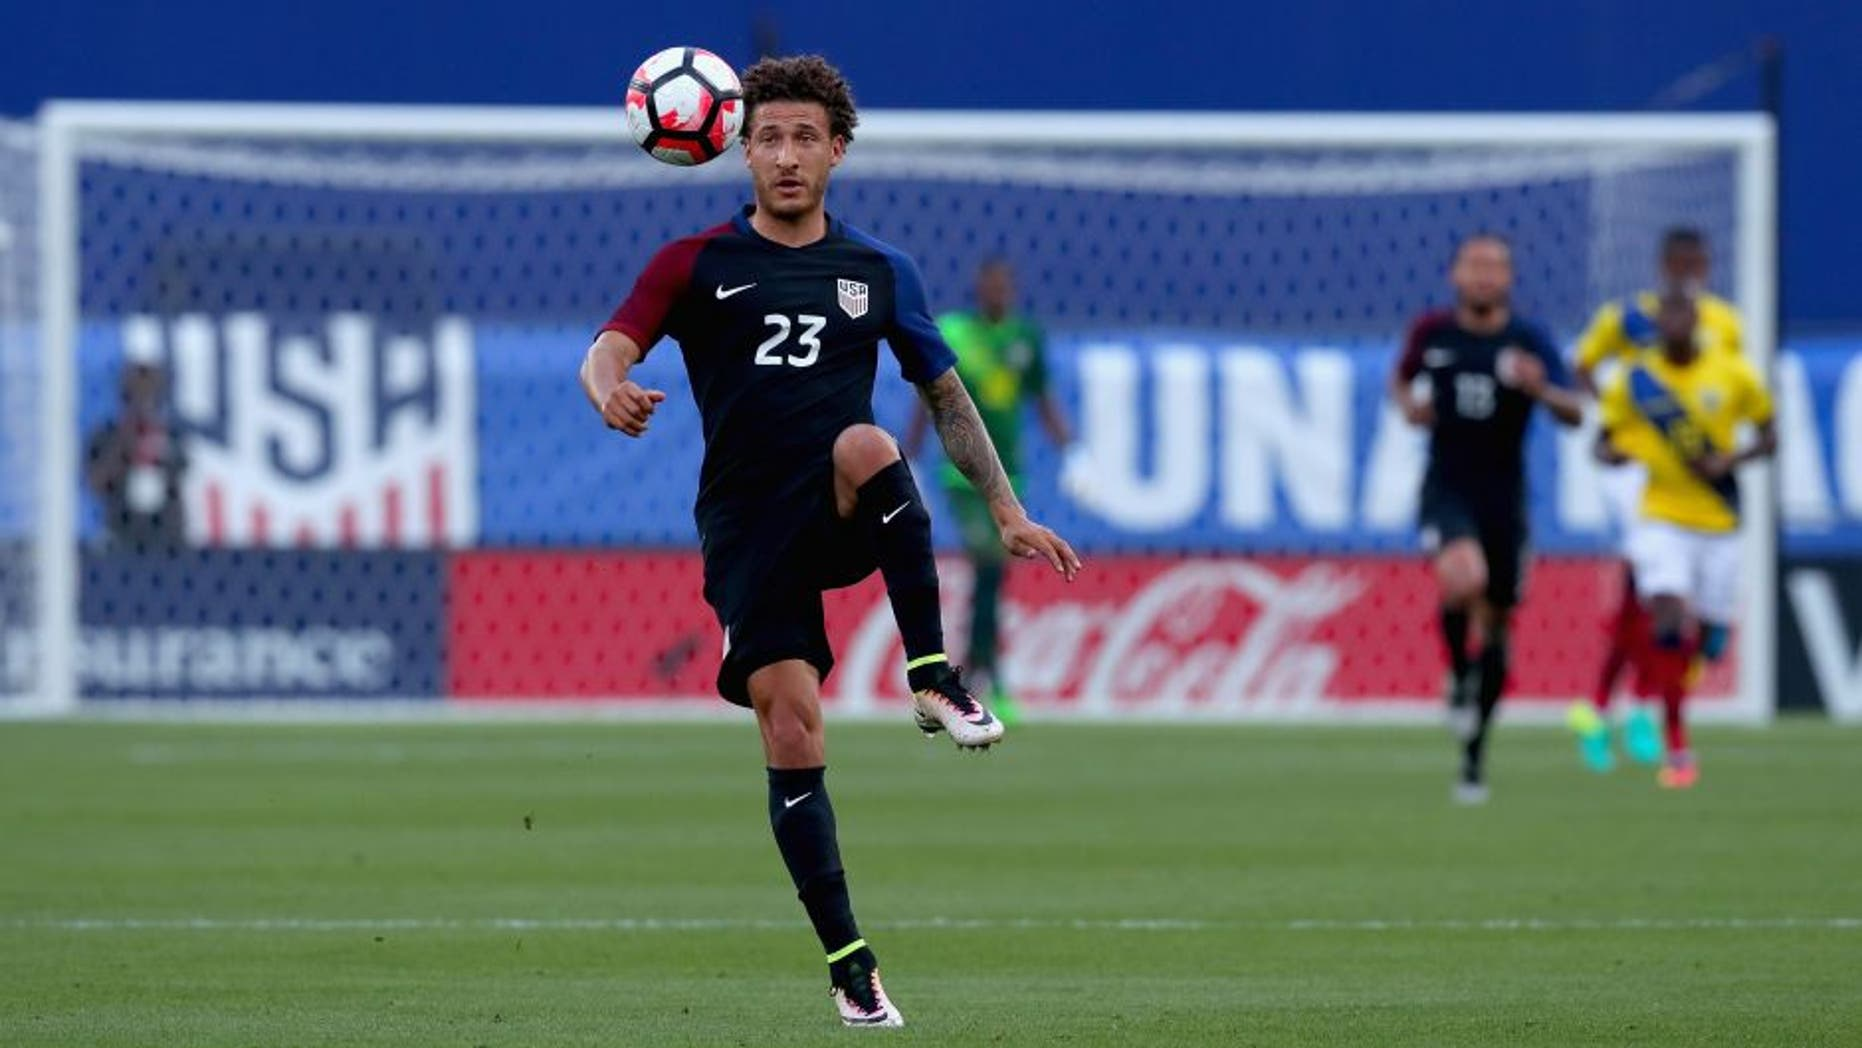 FRISCO, TX - MAY 25: Fabian Johnson #23 of the United States controls the ball against Ecuador during an International Friendly match at Toyota Stadium on May 25, 2016 in Frisco, Texas. (Photo by Tom Pennington/Getty Images)